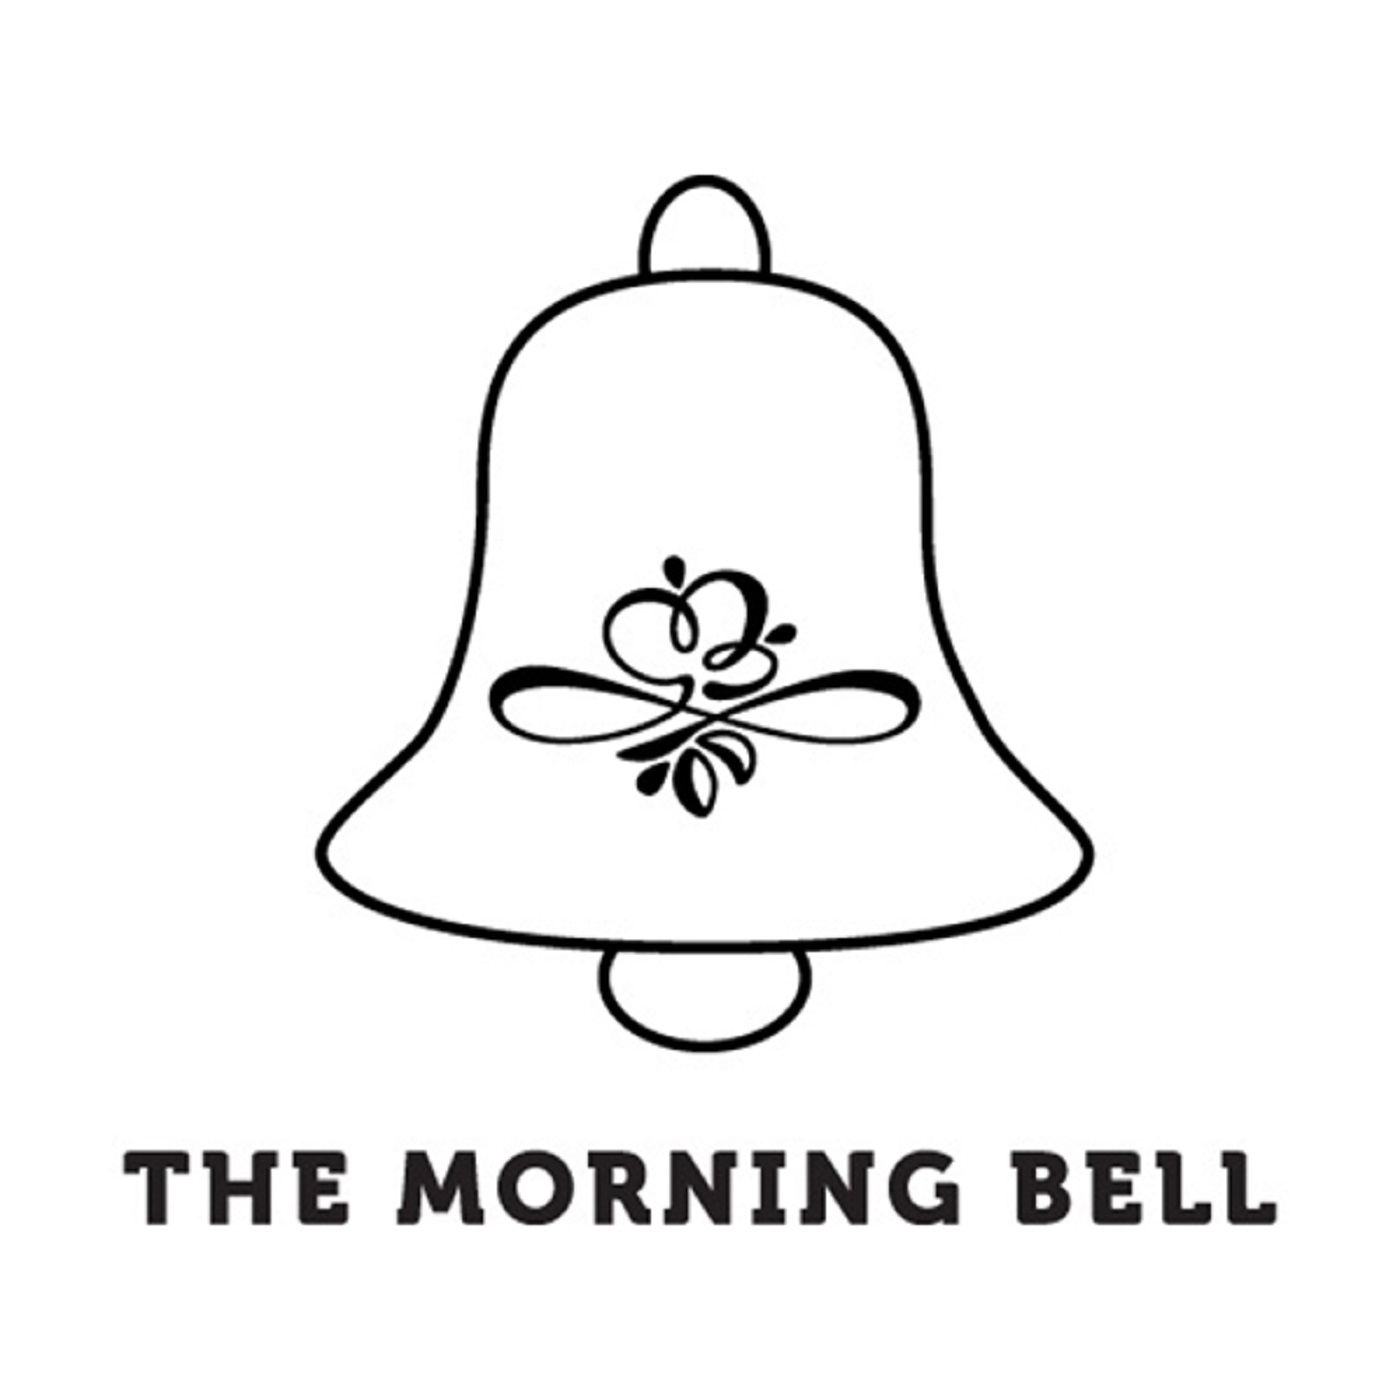 The Morning Bell Podcast Episode 5 - Michael Pryor